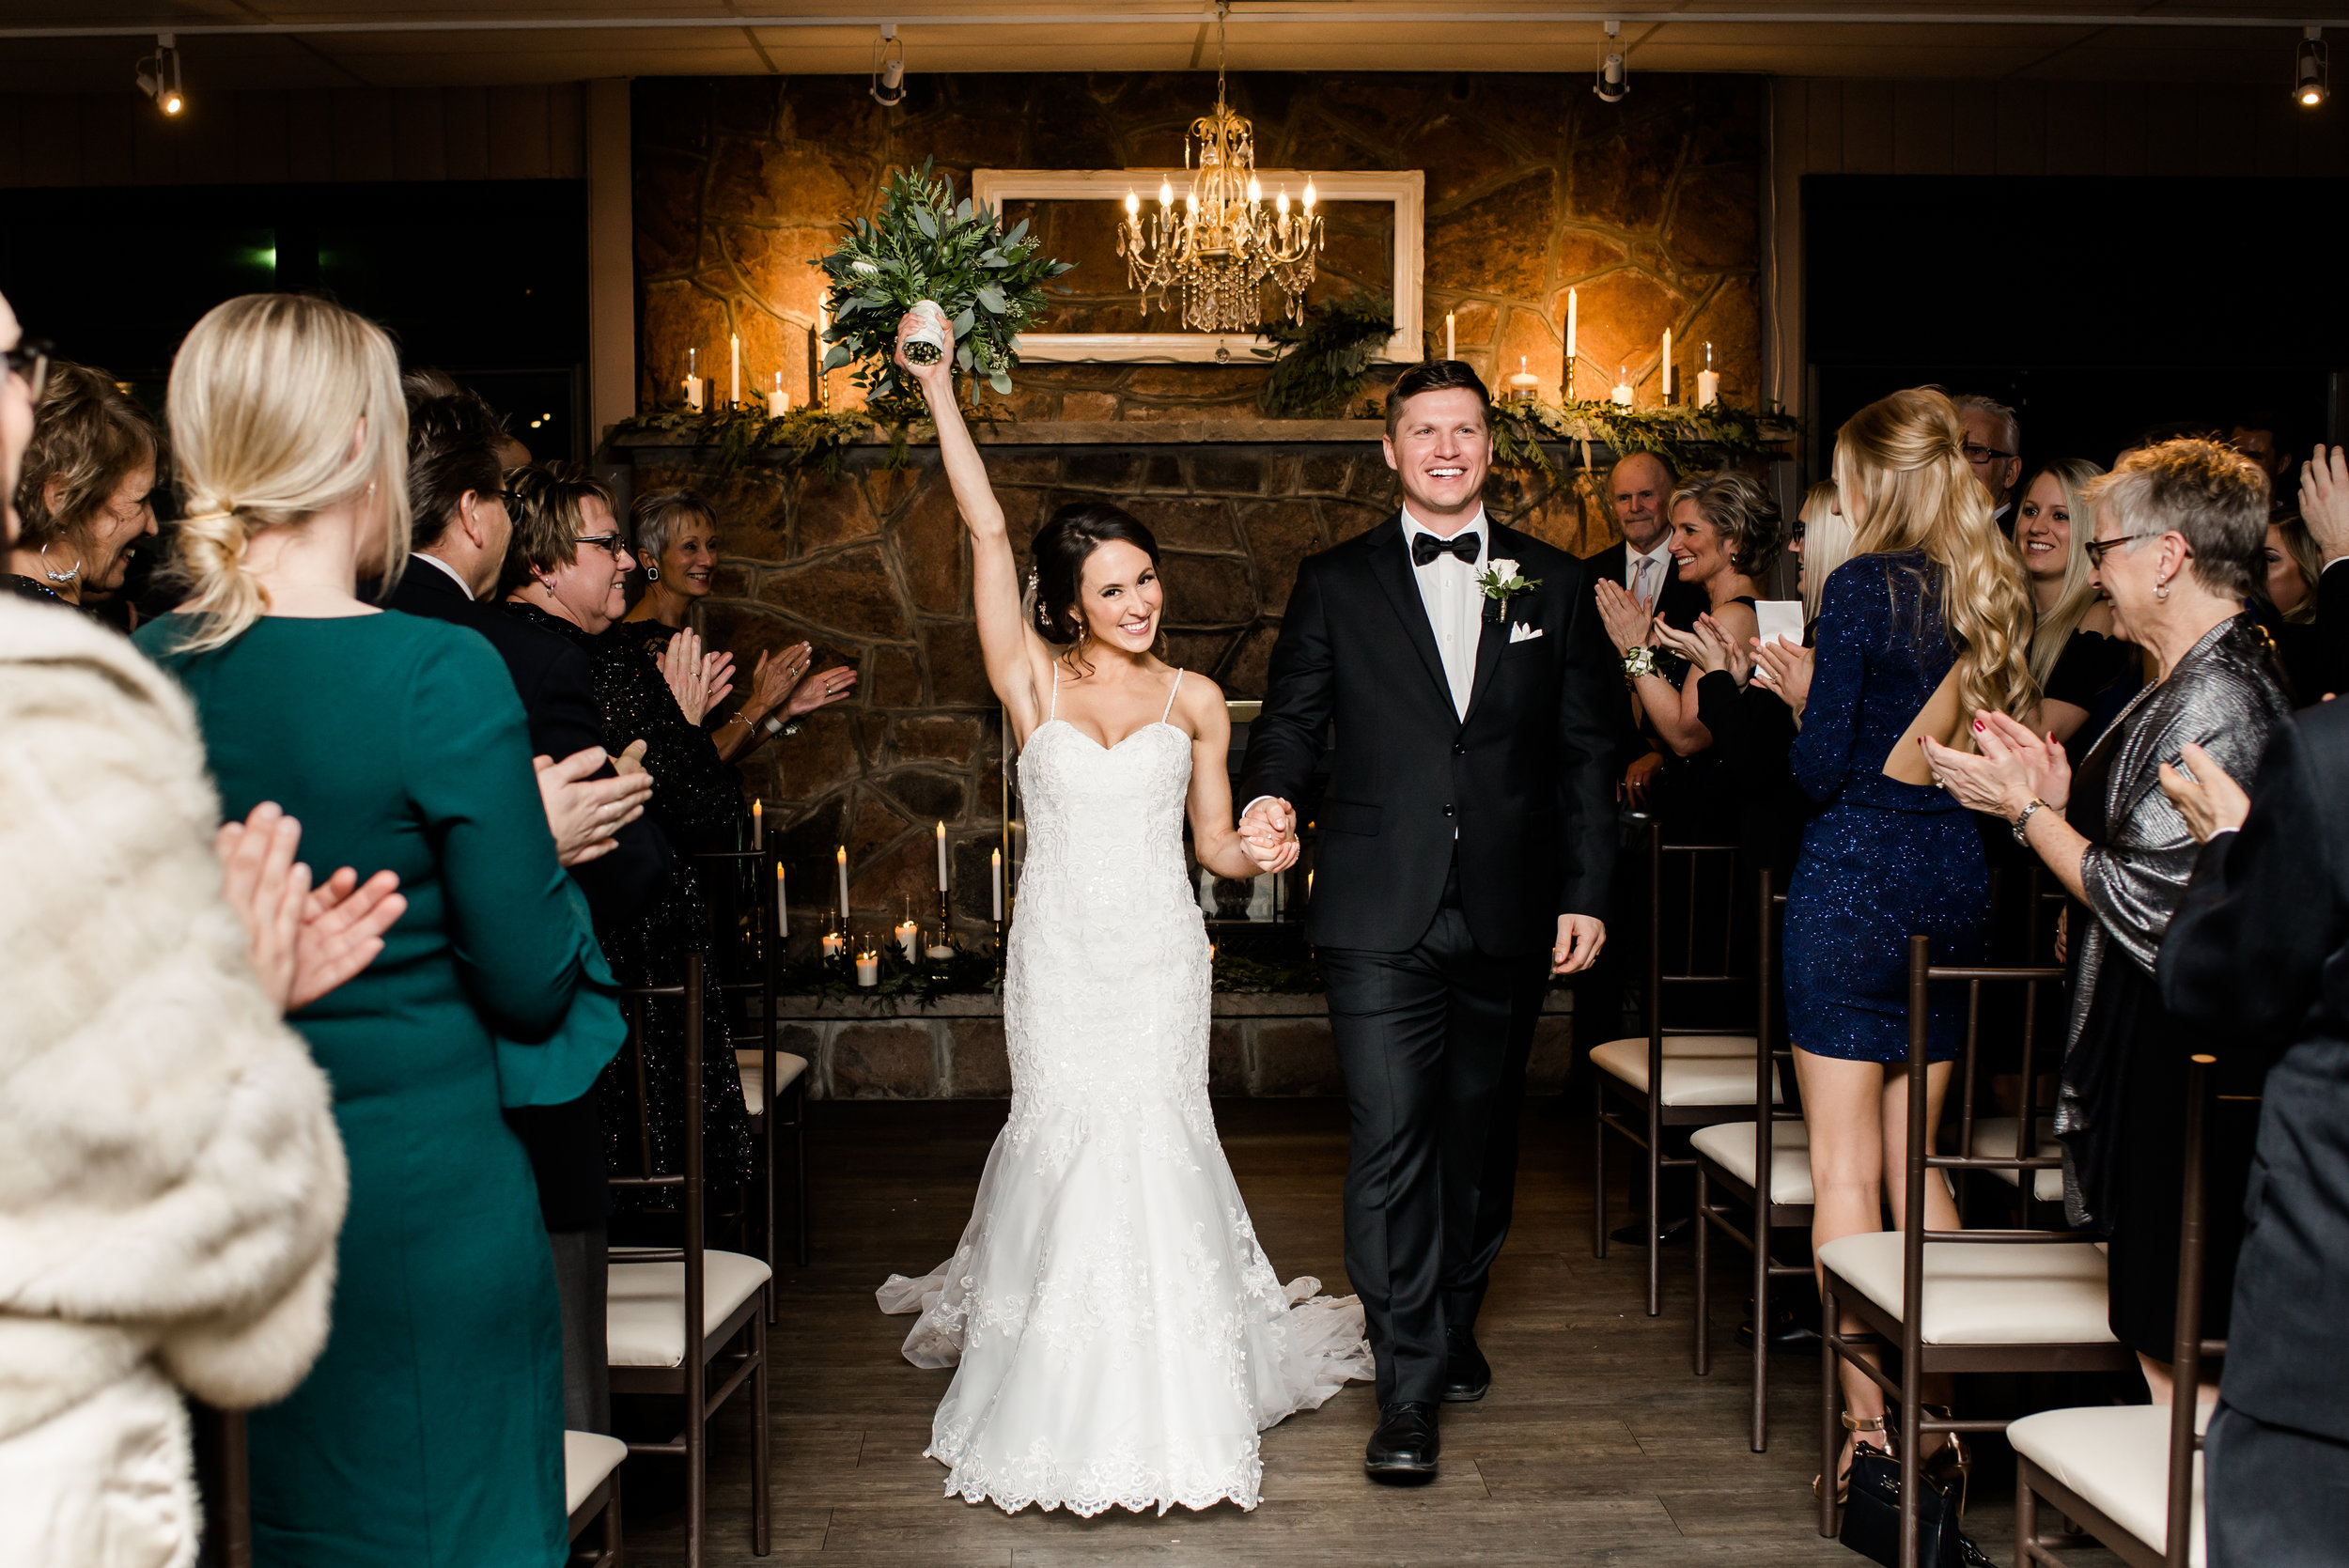 Erica & Chris Hayes - Married December 31st, 2018The Ballroom